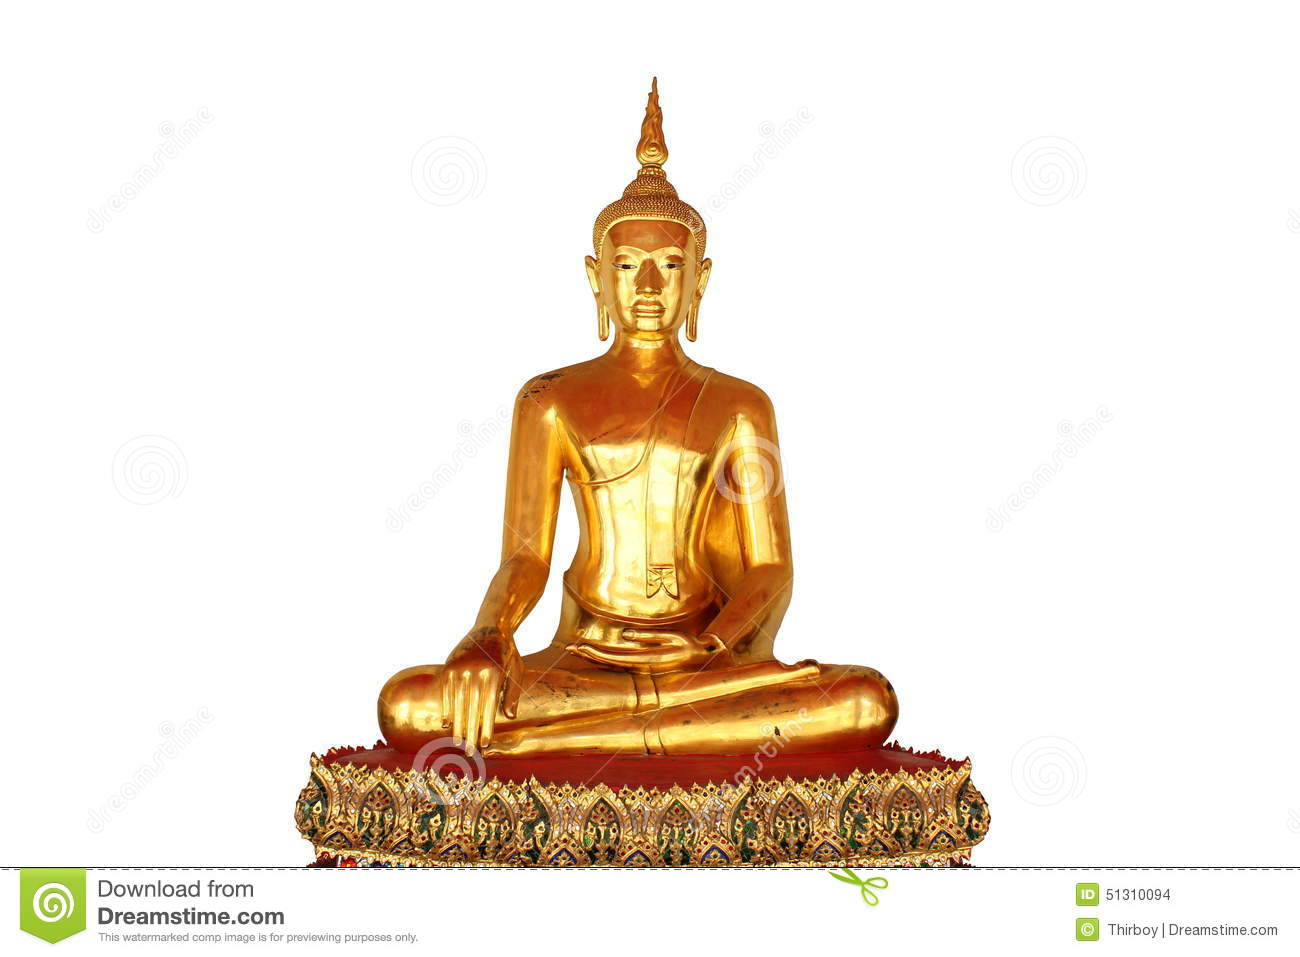 buddhist singles in smyrna Finally, a place for single buddhists to connect with like-minded people & find a  long-lasting relationship start buddhist dating with elitesingles today.